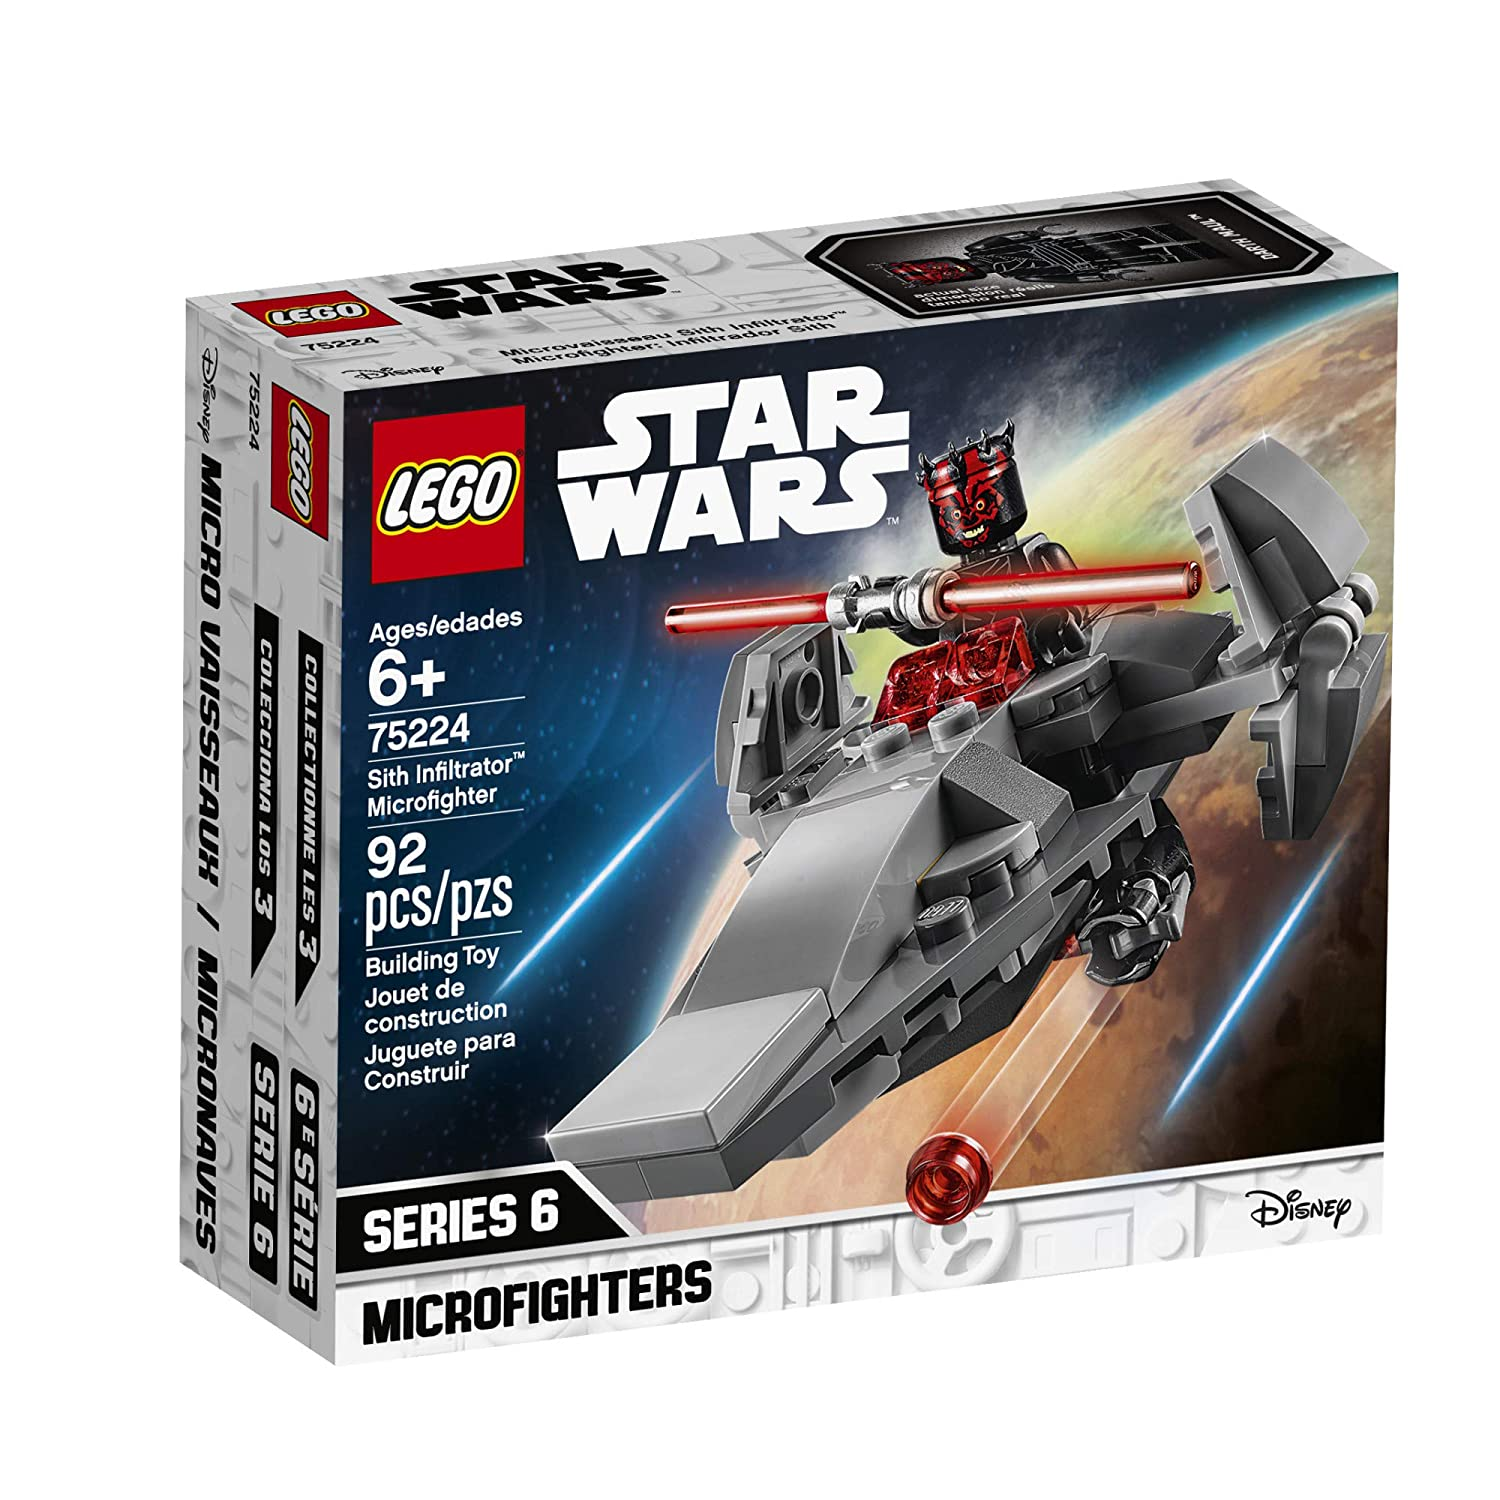 92 Piece LEGO Star Wars Sith Infiltrator Microfighter 75224 Building Kit New 2019